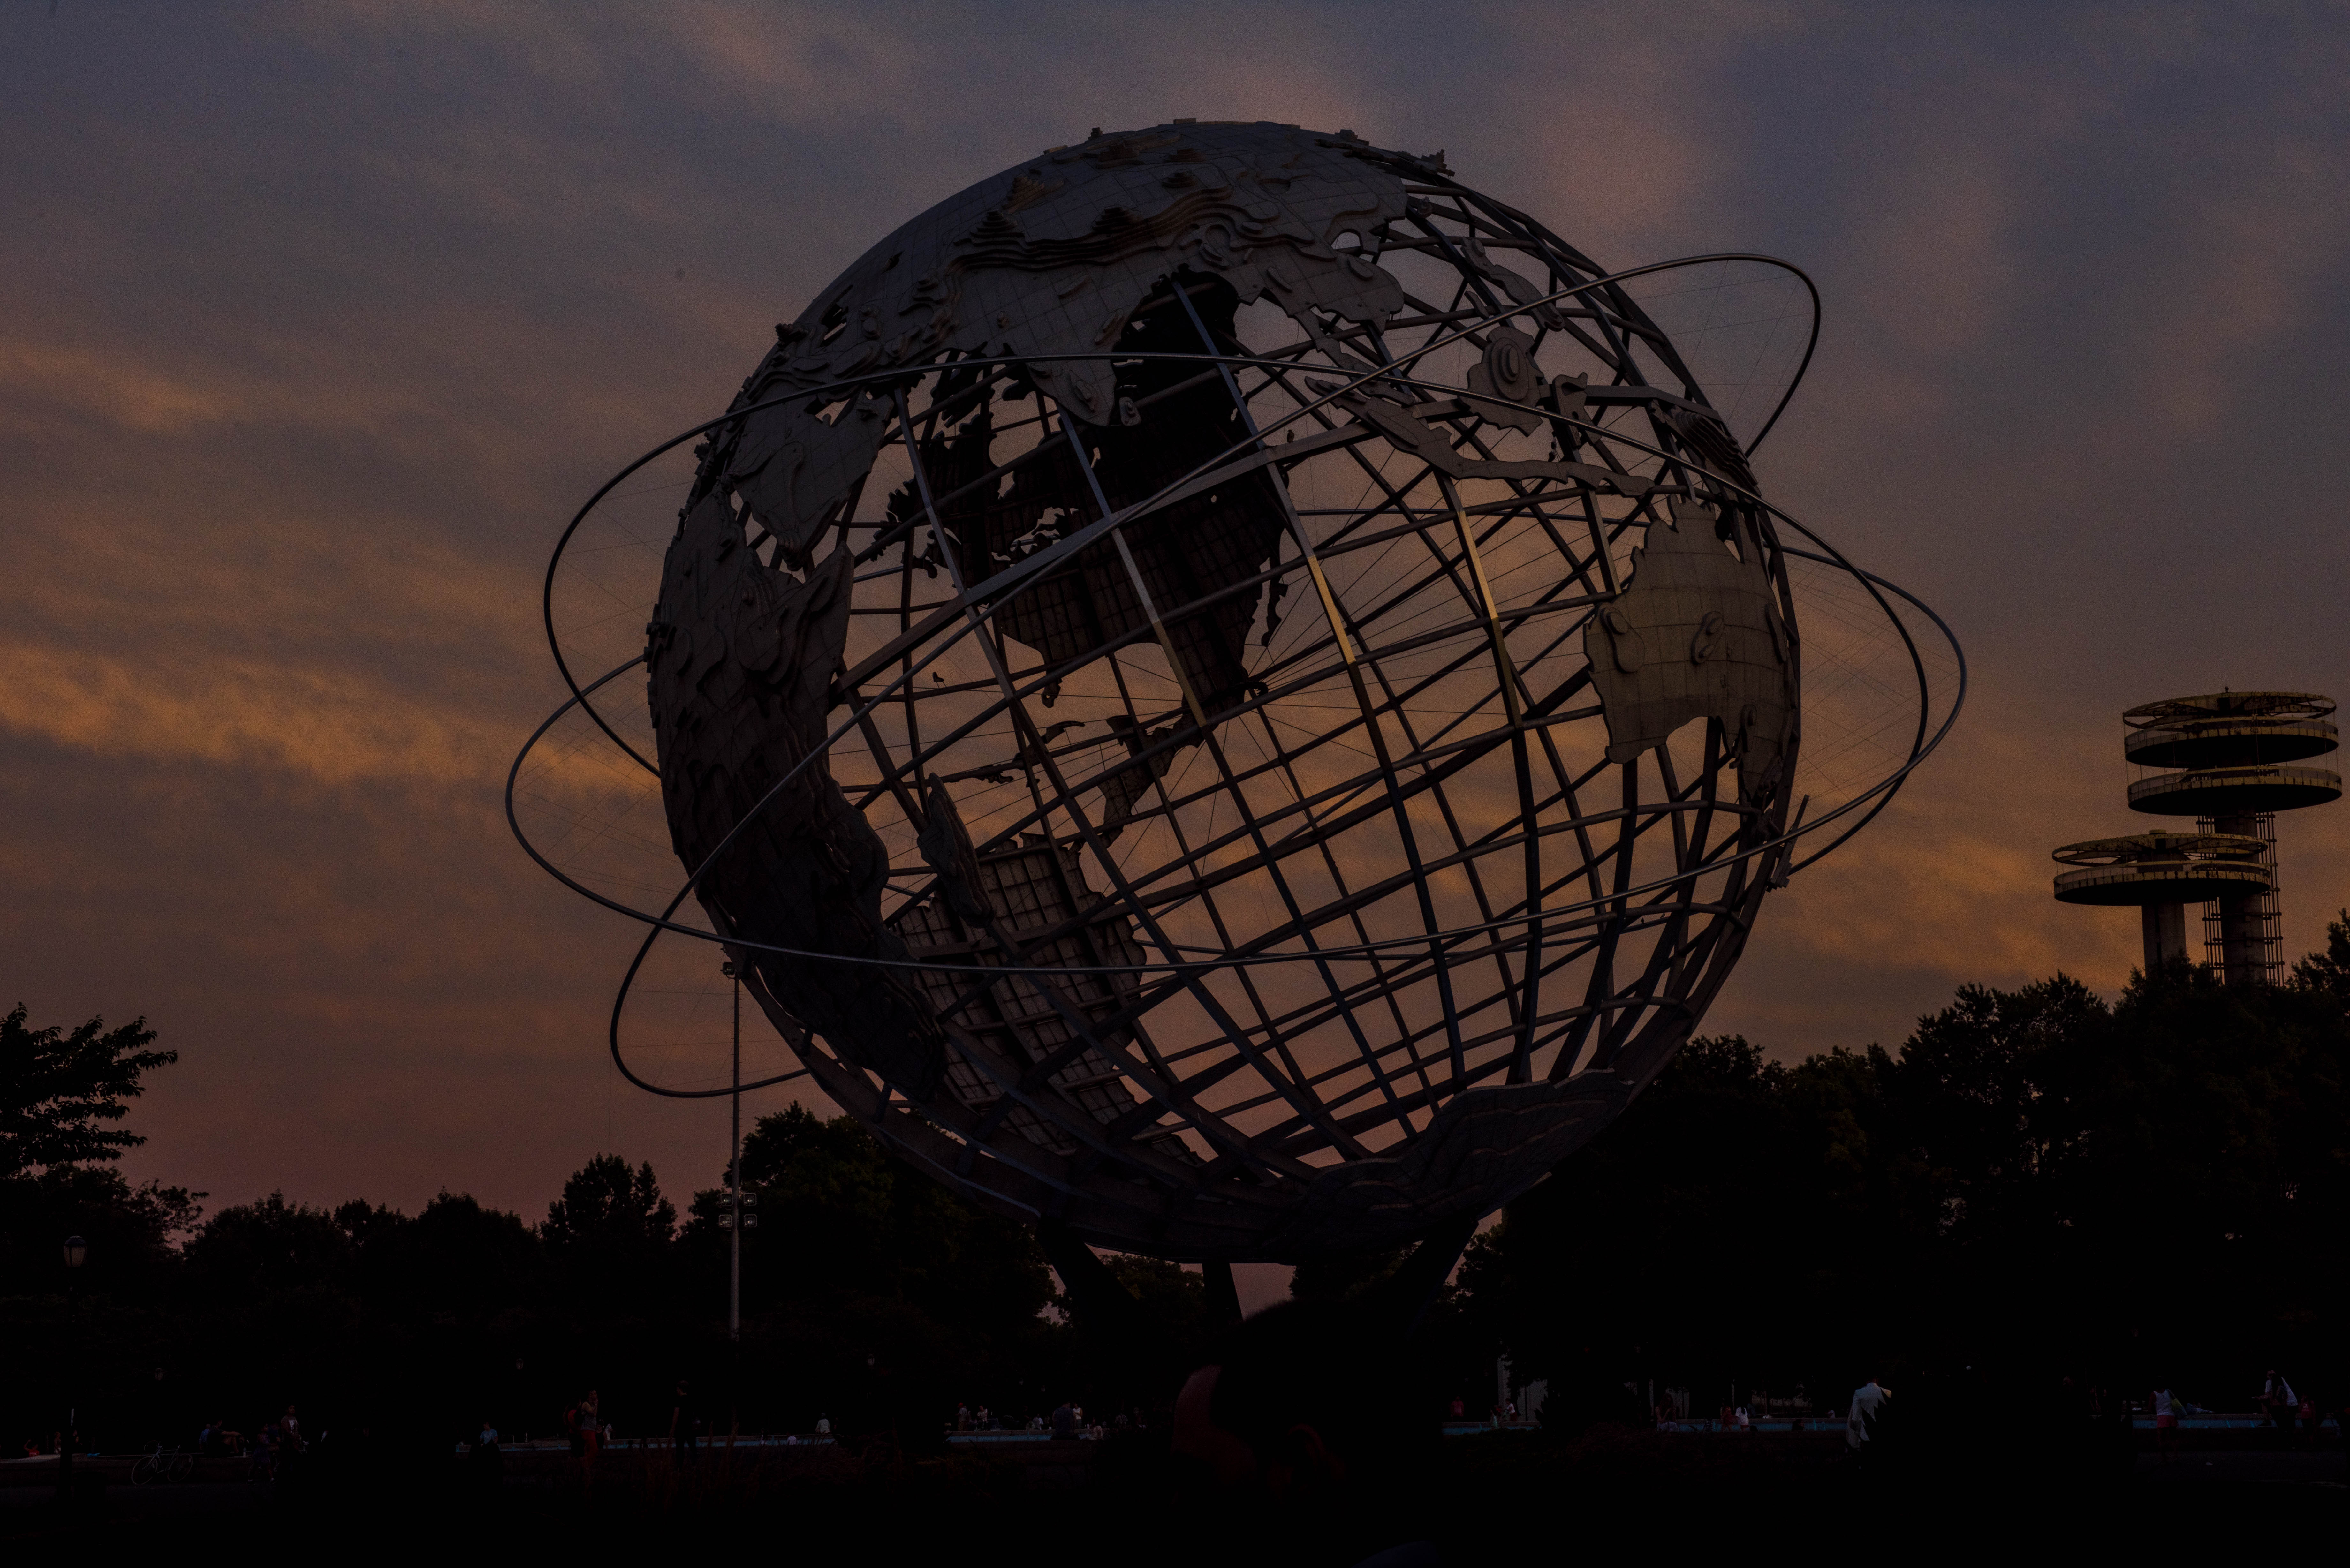 Flushing meadow park, queens ny